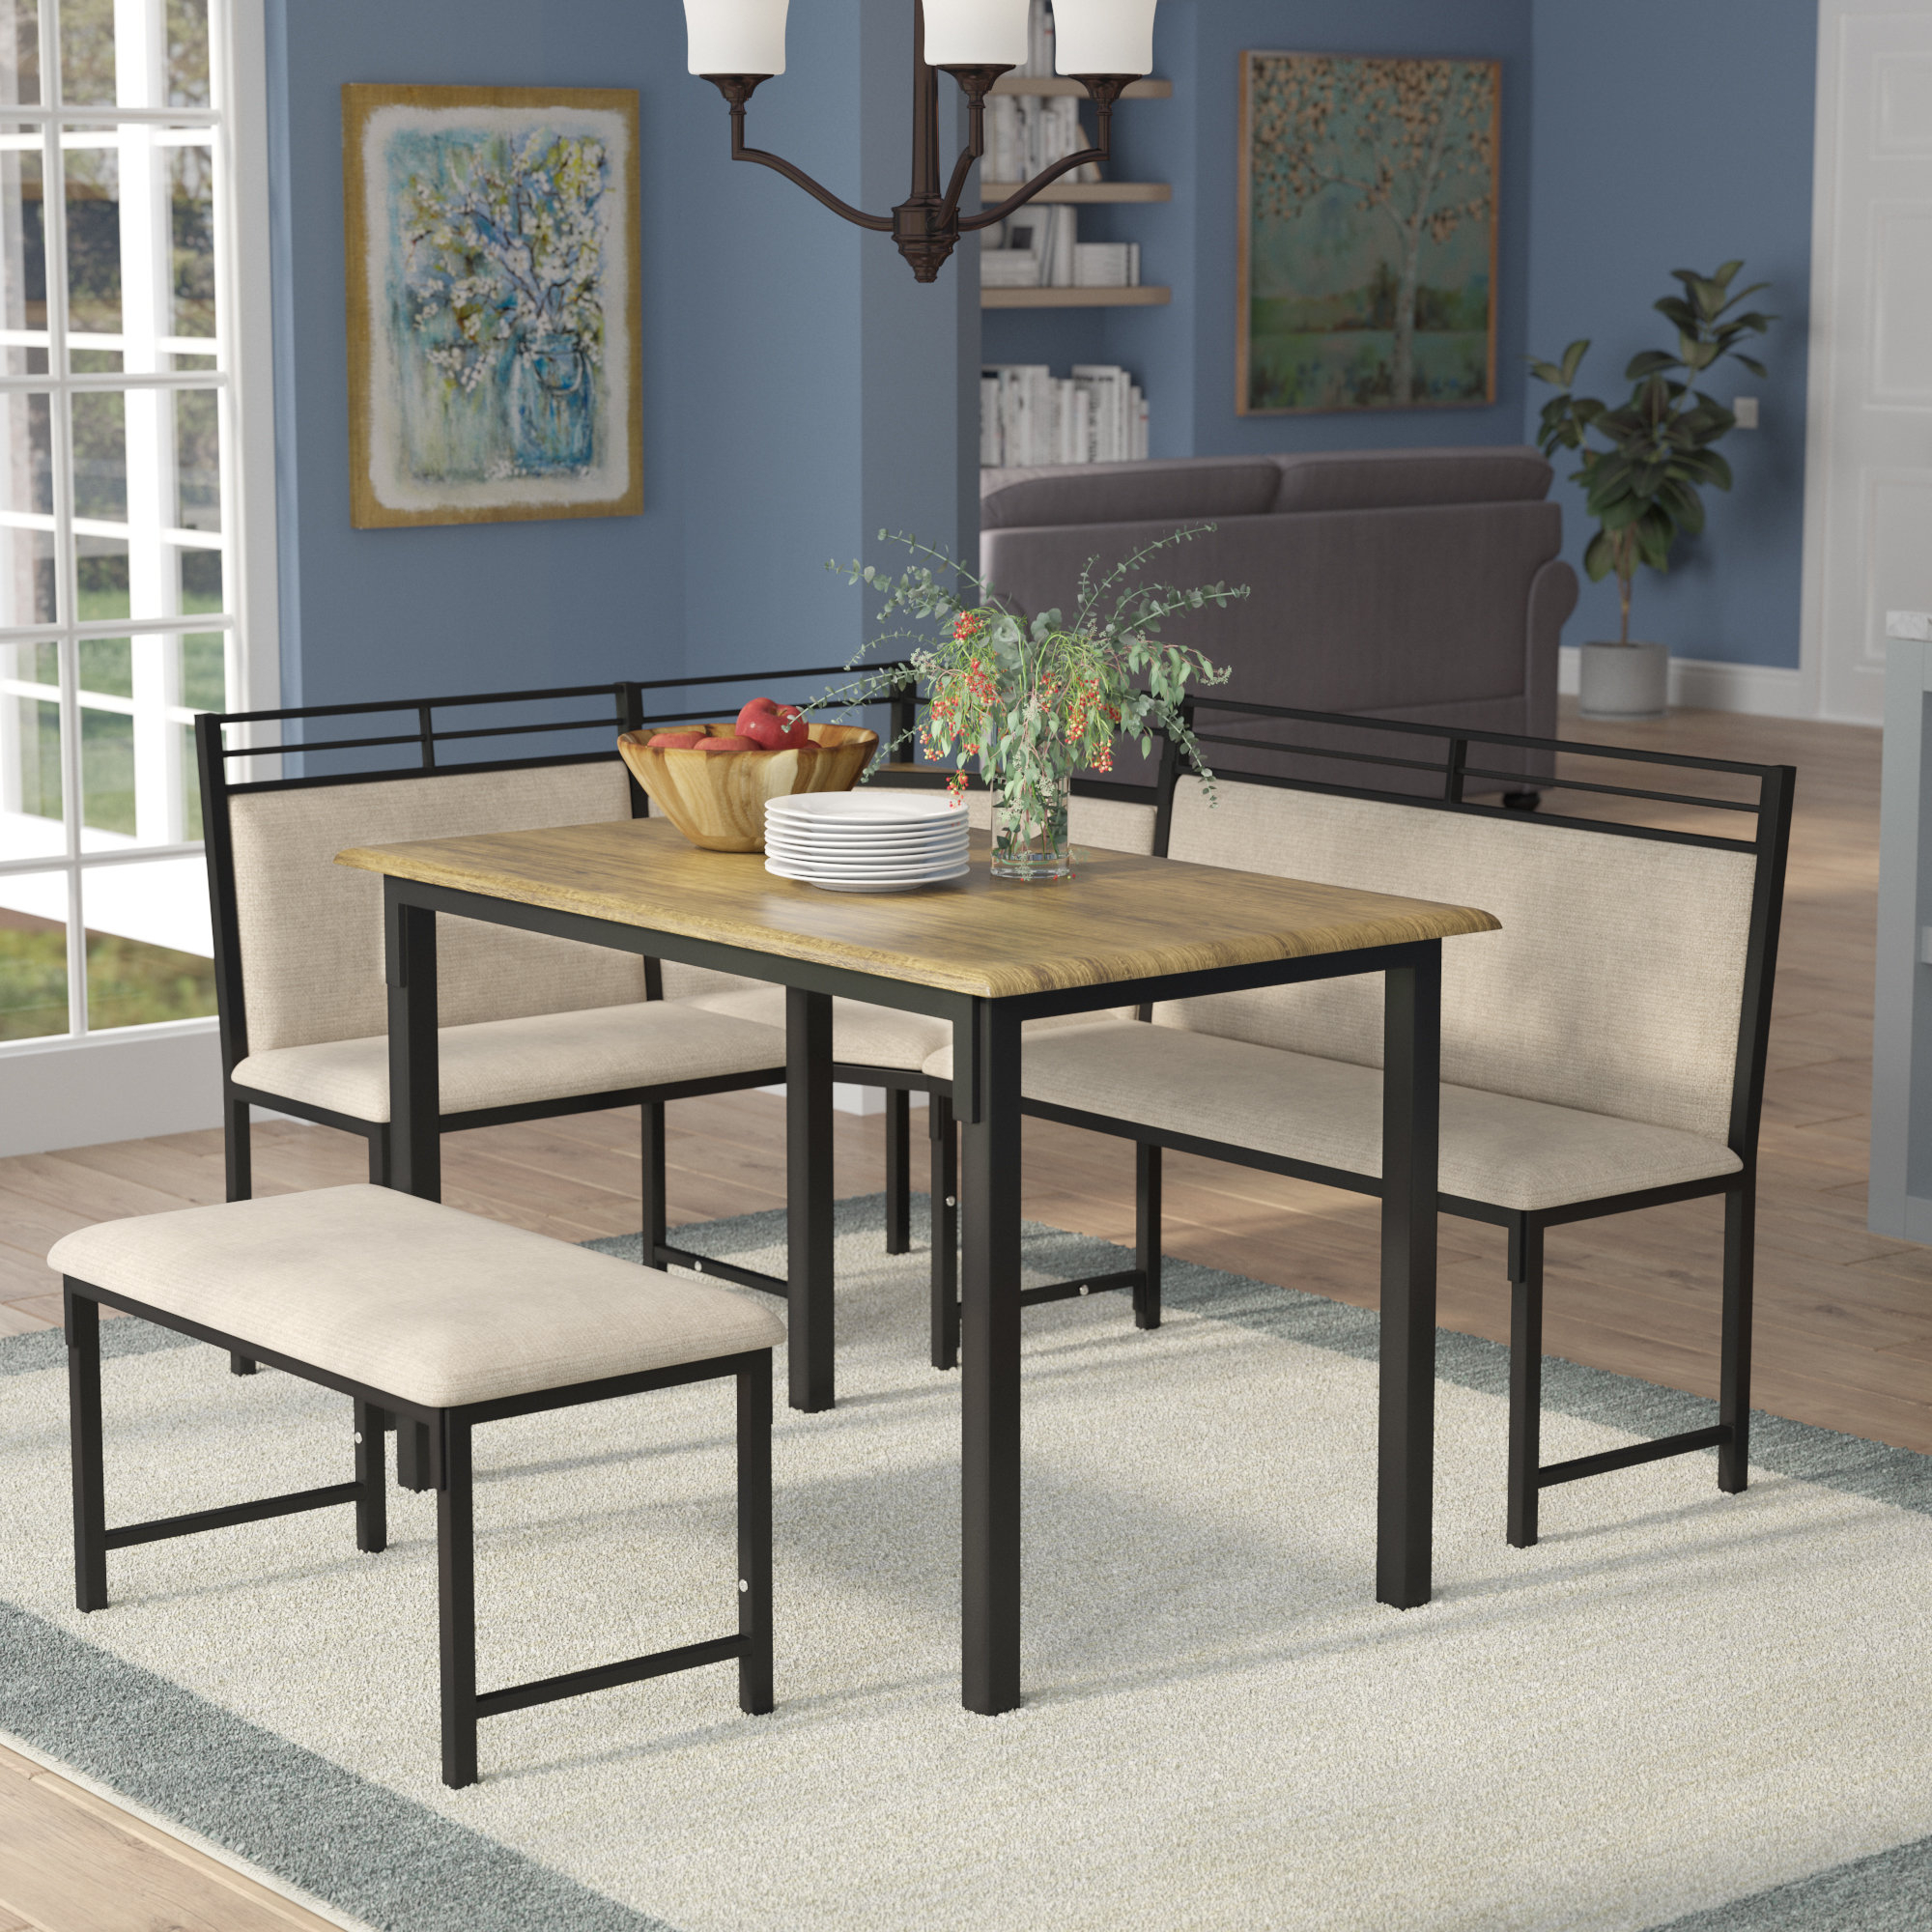 Rossiter 3 Piece Dining Sets With Famous Moonachie Corner 3 Piece Dining Set (View 13 of 20)